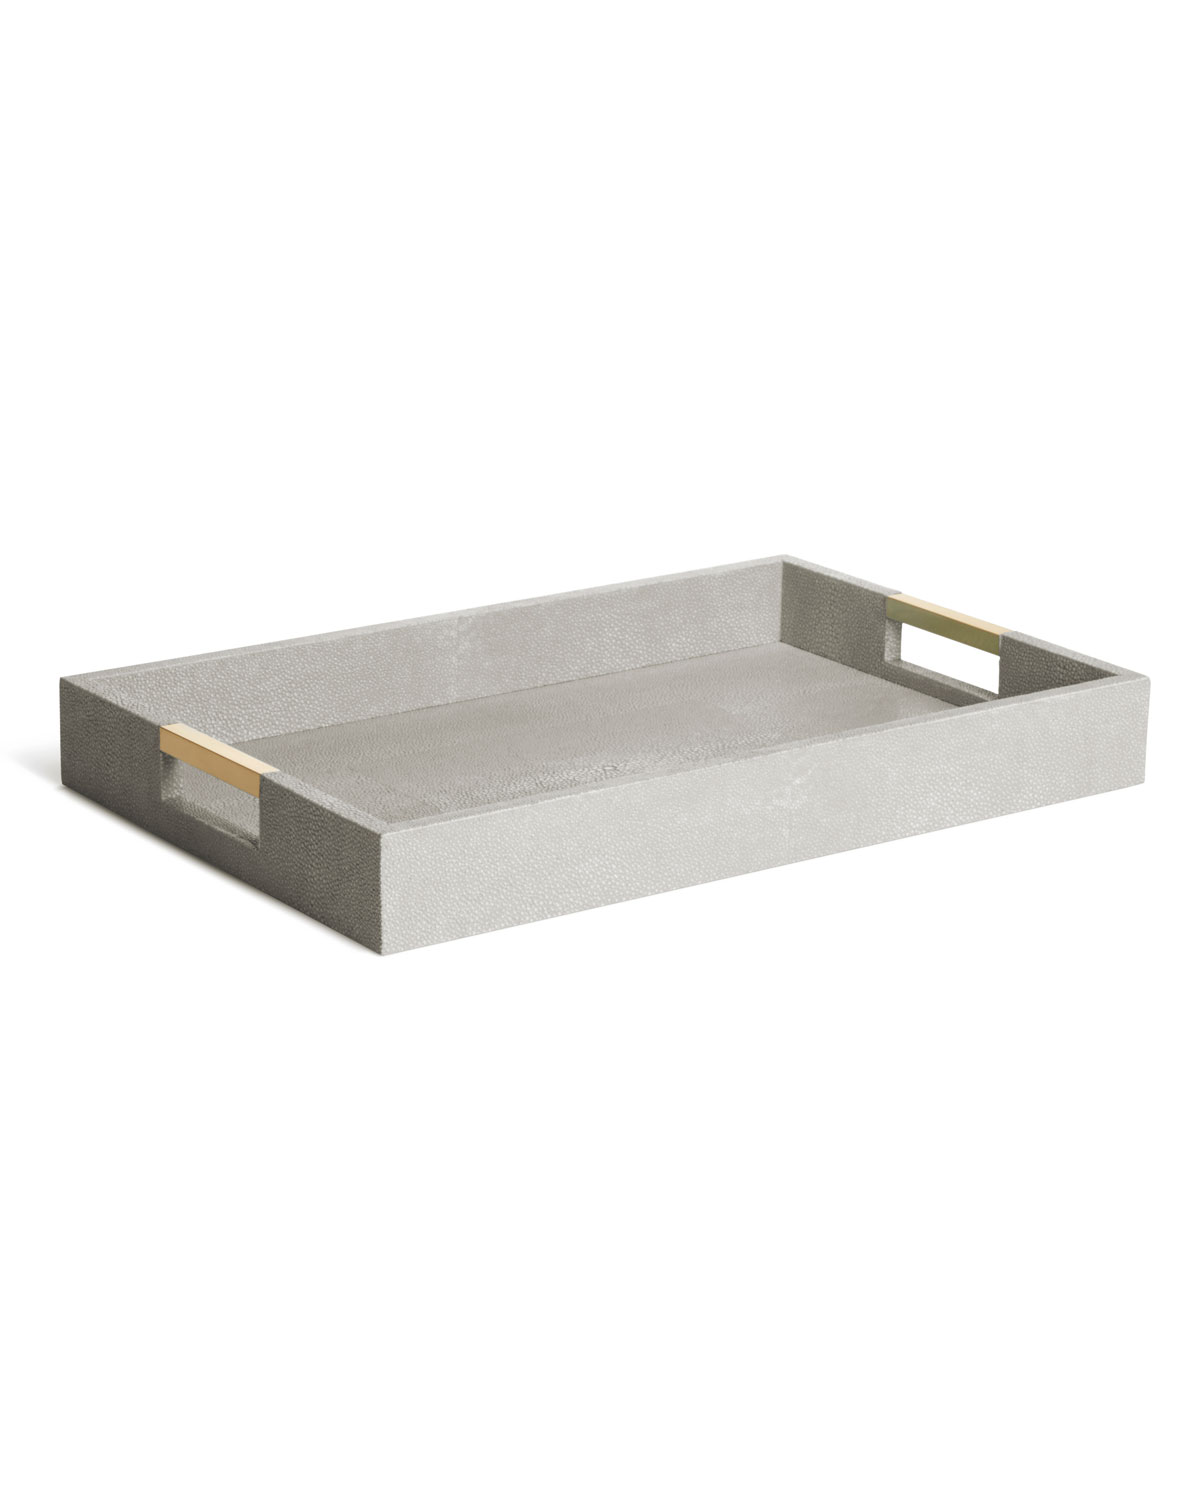 Aerin Home decors MODERN SHAGREEN DESK TRAY